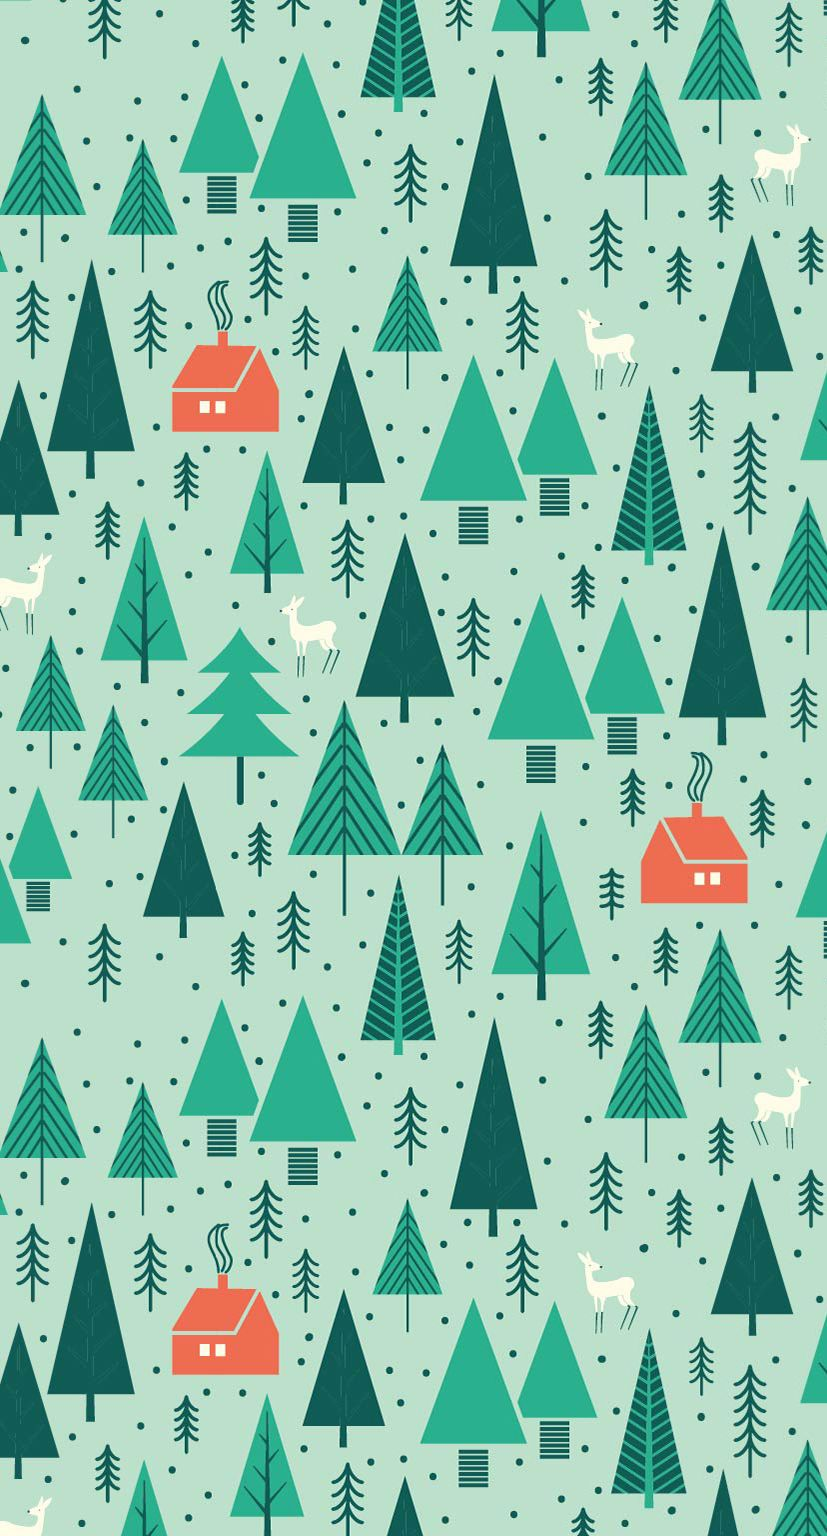 Whimsical Trees Print Greetabl Wallpaper Iphone Christmas Christmas Pattern Background Christmas Wallpaper Backgrounds